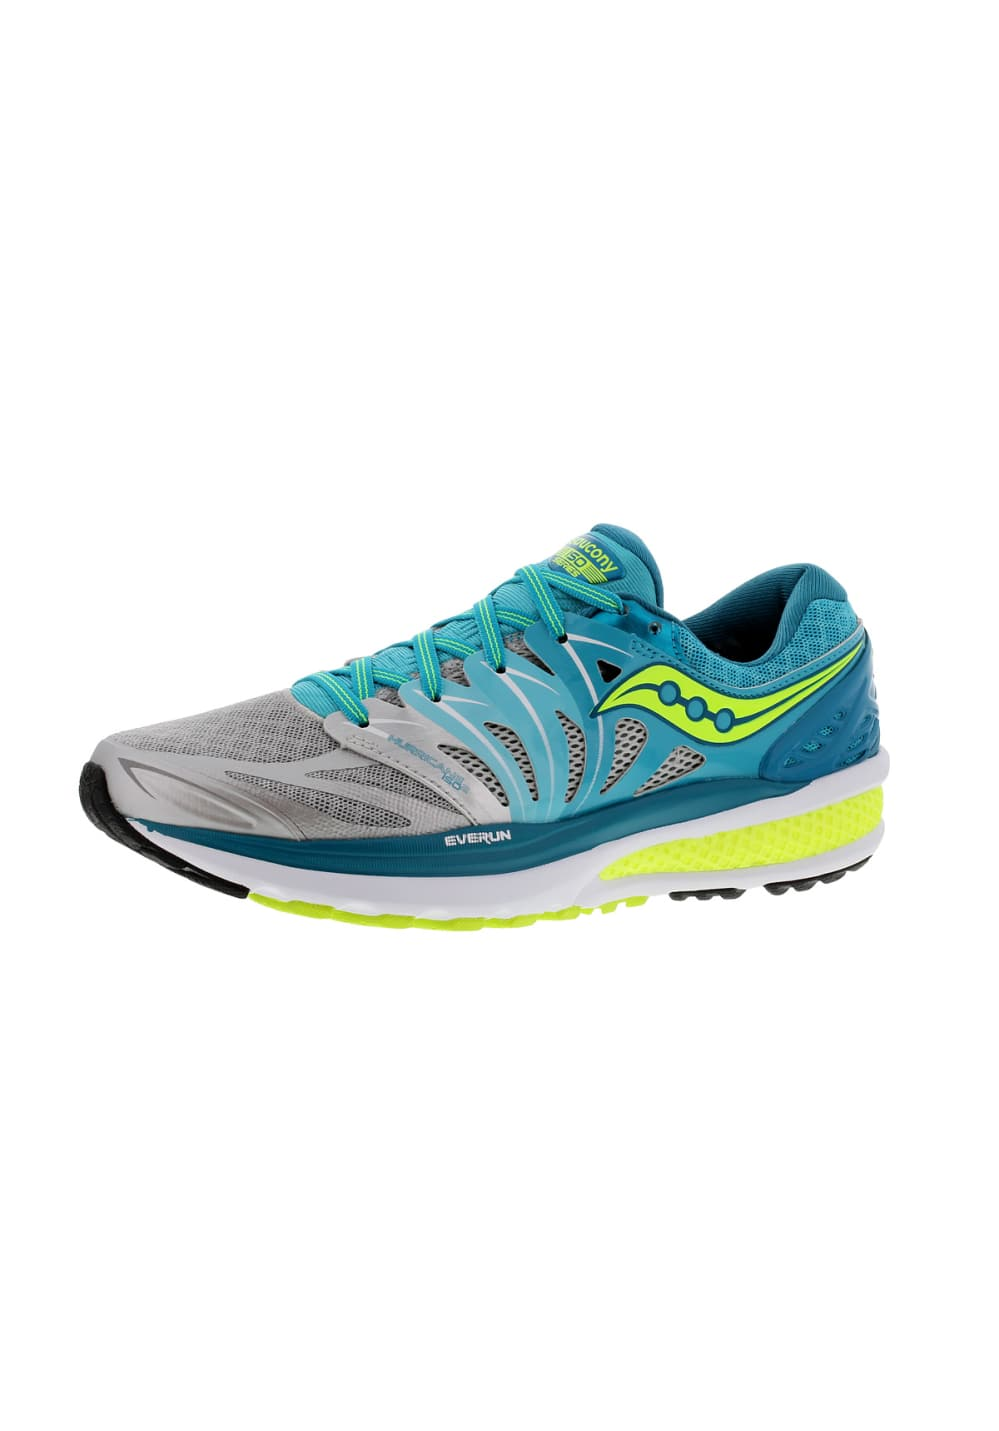 a27ca4bc Saucony Hurricane Iso 2 - Running shoes for Women - Blue